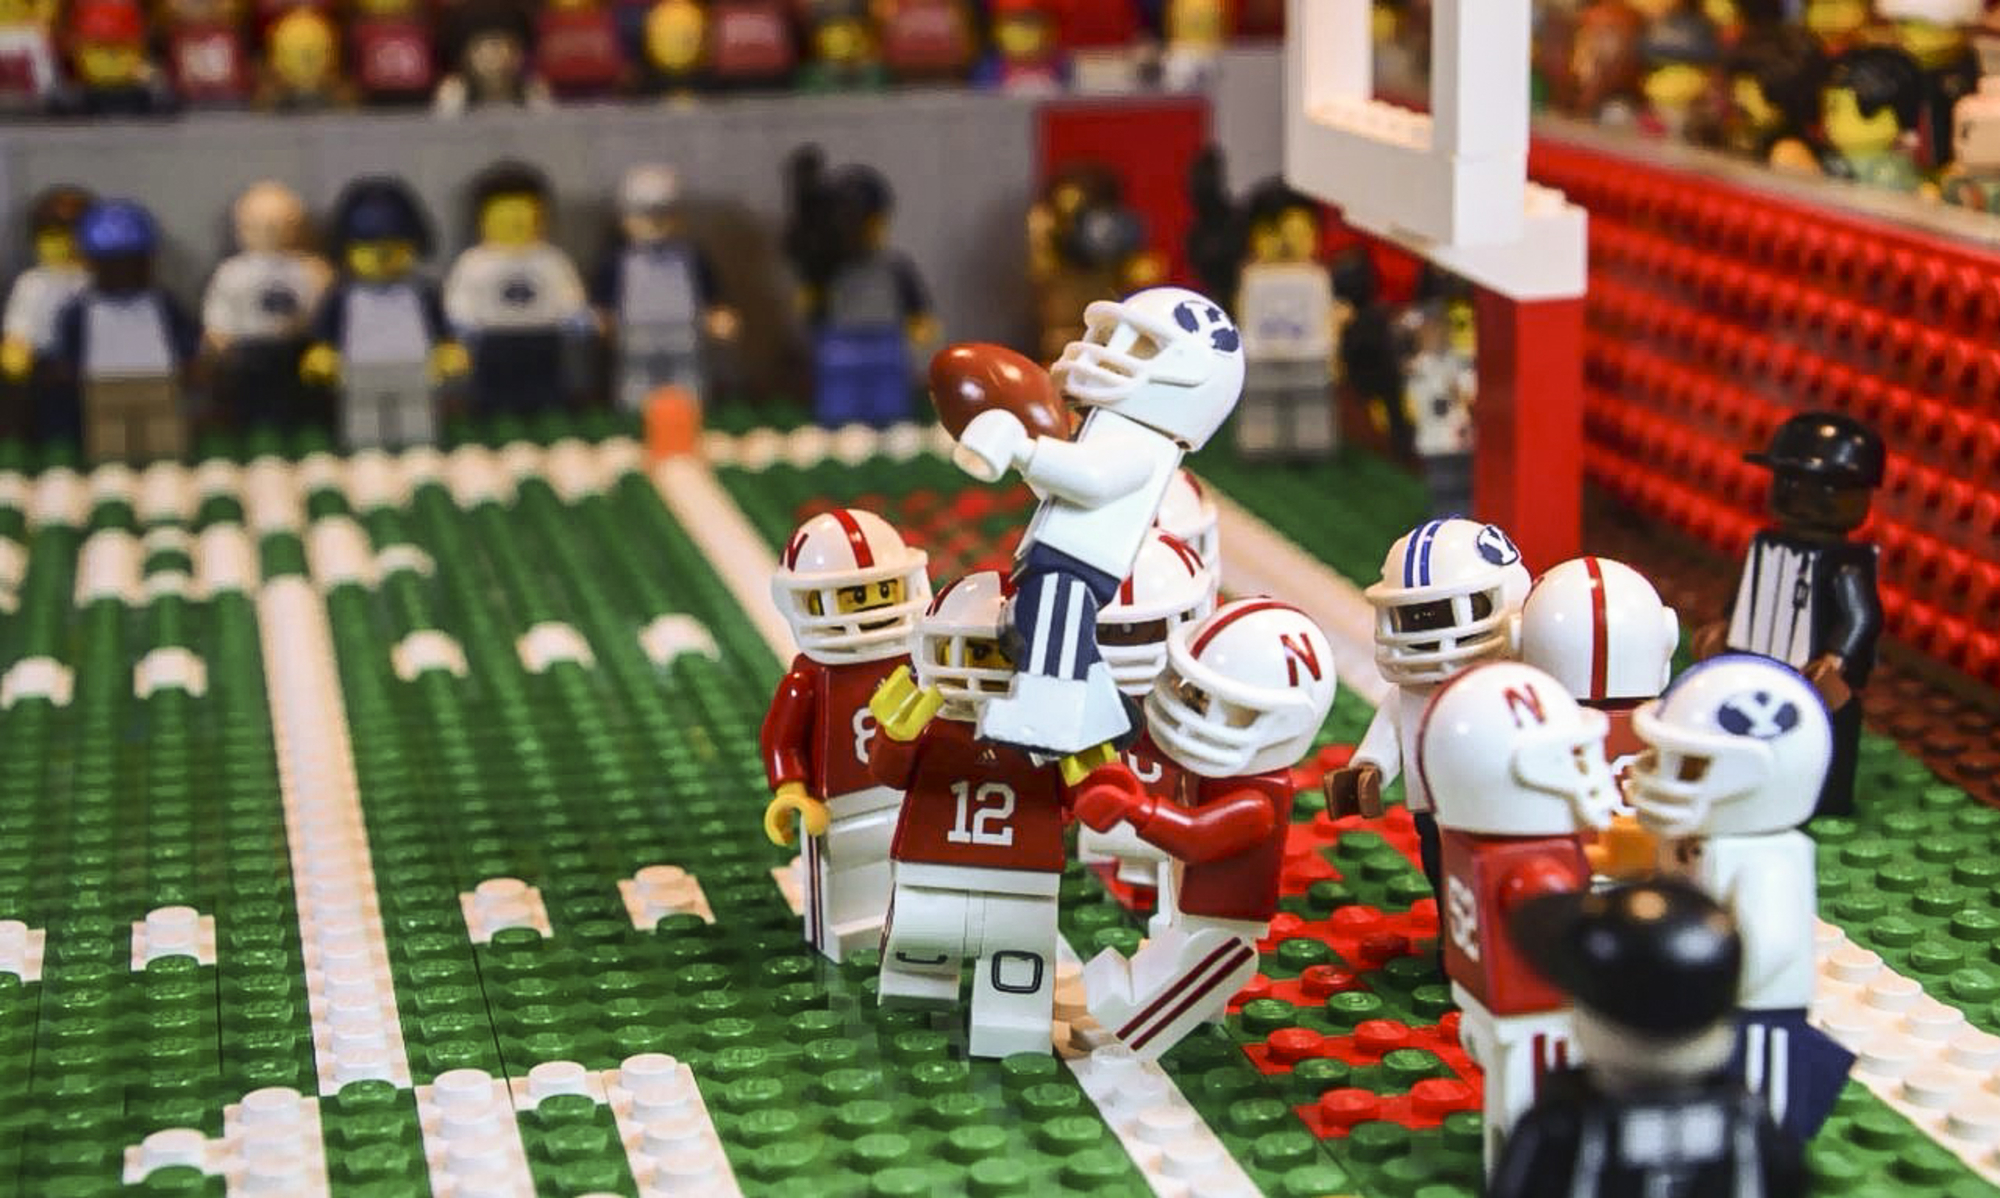 This undated image taken from video provided by Lego animator Jared Jacobs shows a frame from a video he created of BYU's Mitch Mathews catching a 42-yard pass by BYU quarterback Tanner Mangum with no time left to beat Nebraska 33-28 in Lincoln, Neb., las